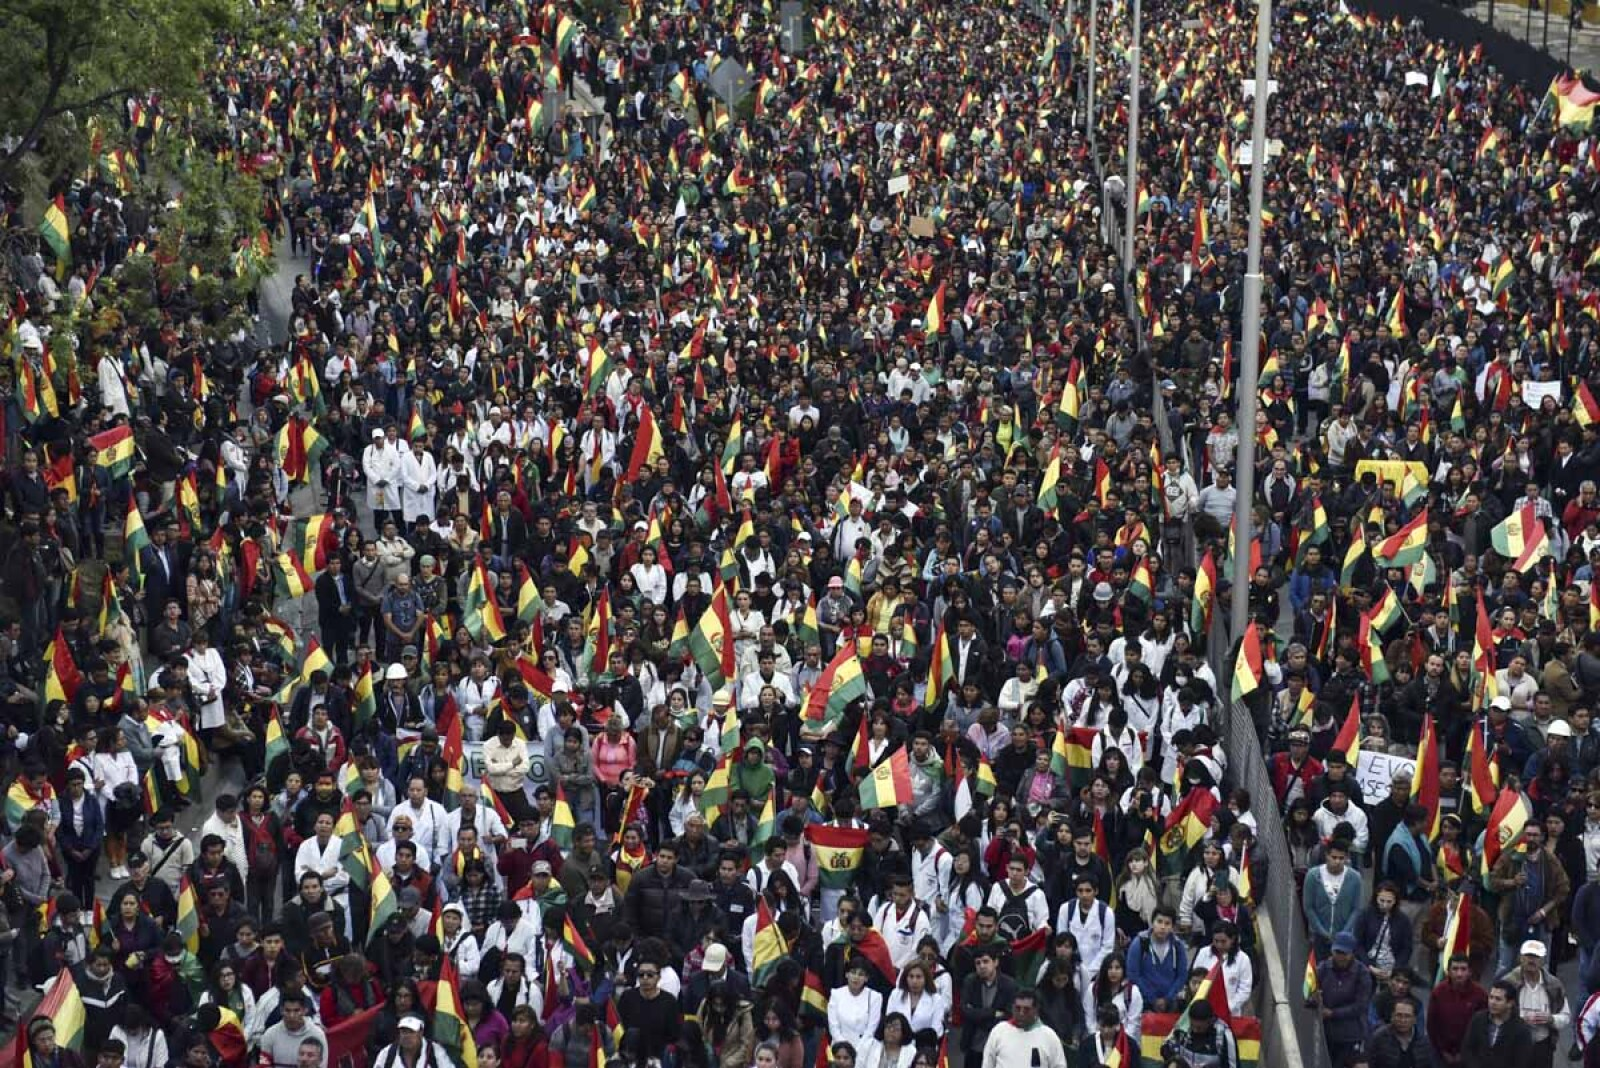 BOLIVIA-ELECTION-RESULTS-PROTEST